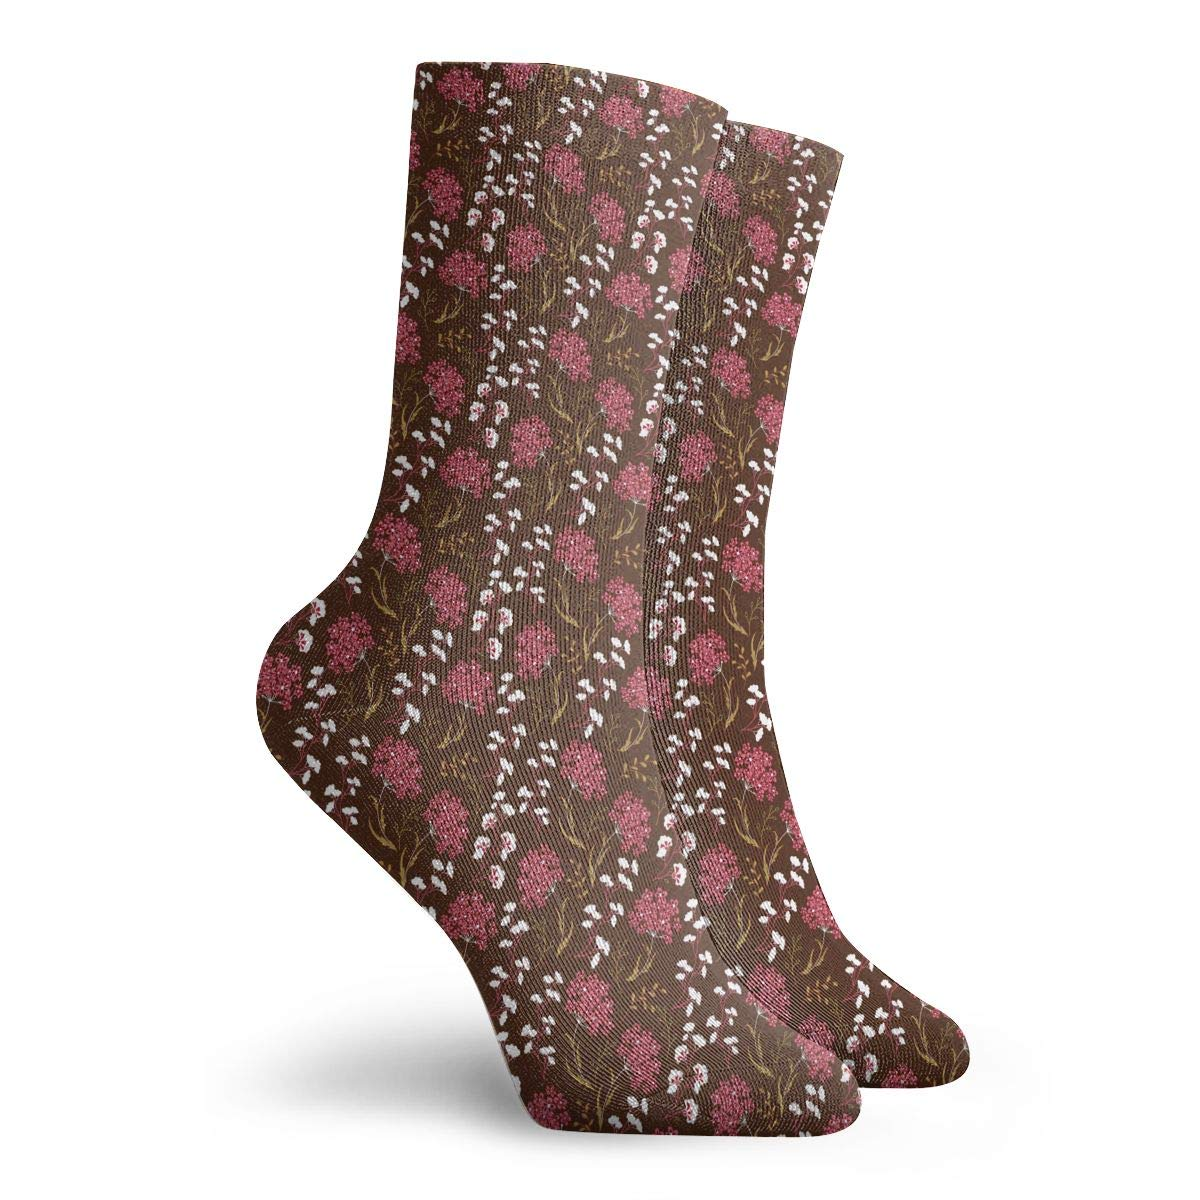 Mens Fashion Performance Polyester Socks Cute Floral Pattern Casual Athletic Crew Socks.